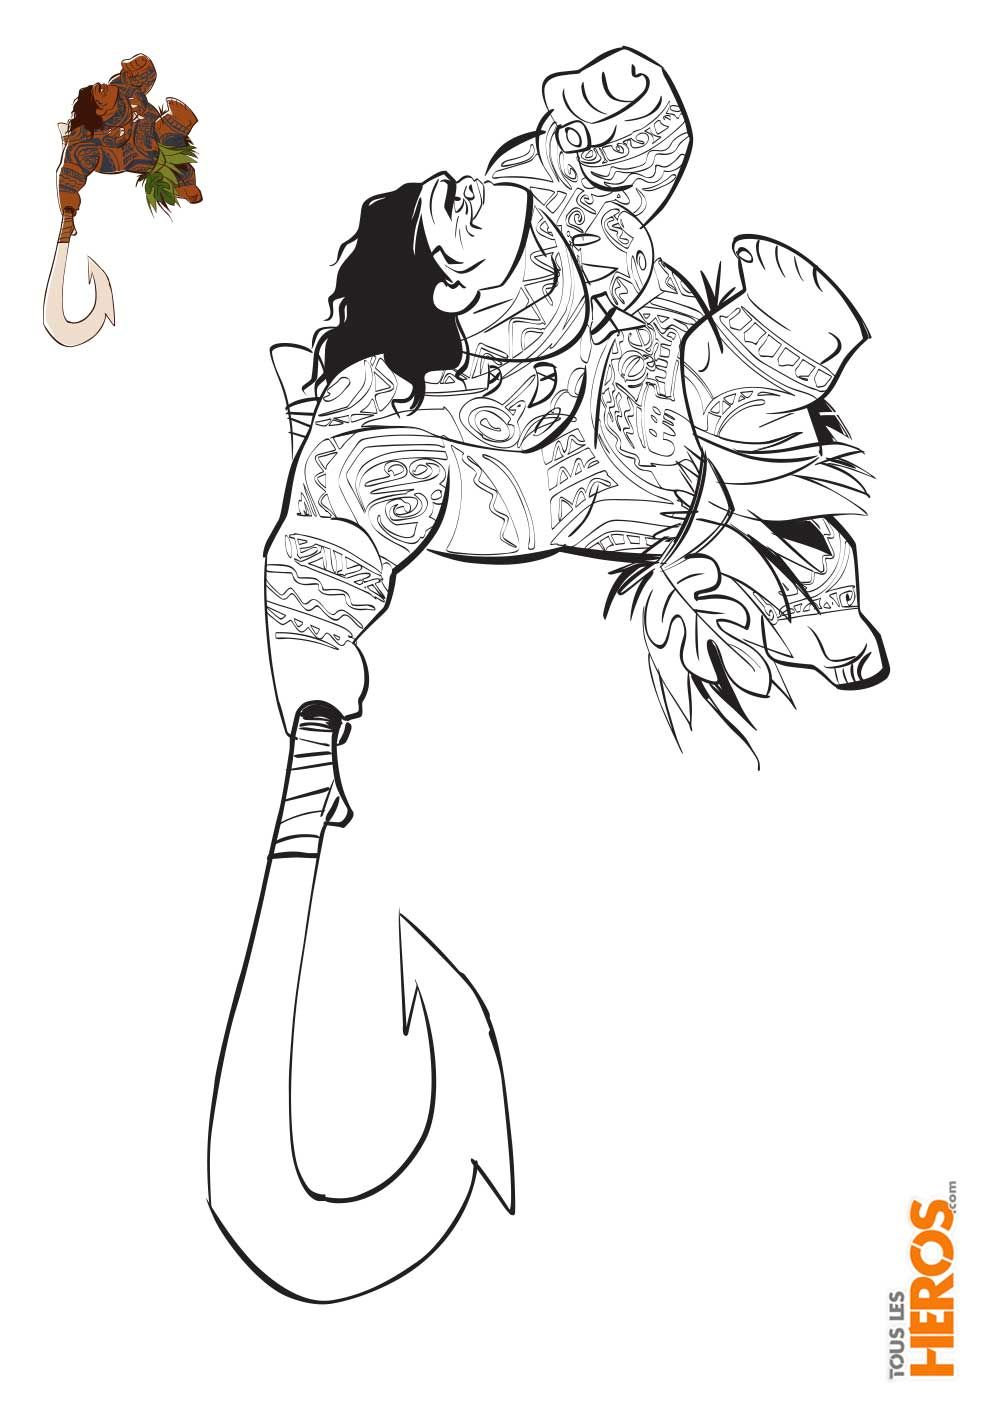 Pin By Inez Barron On Coloring 9 Coloring Pages Moana Coloring